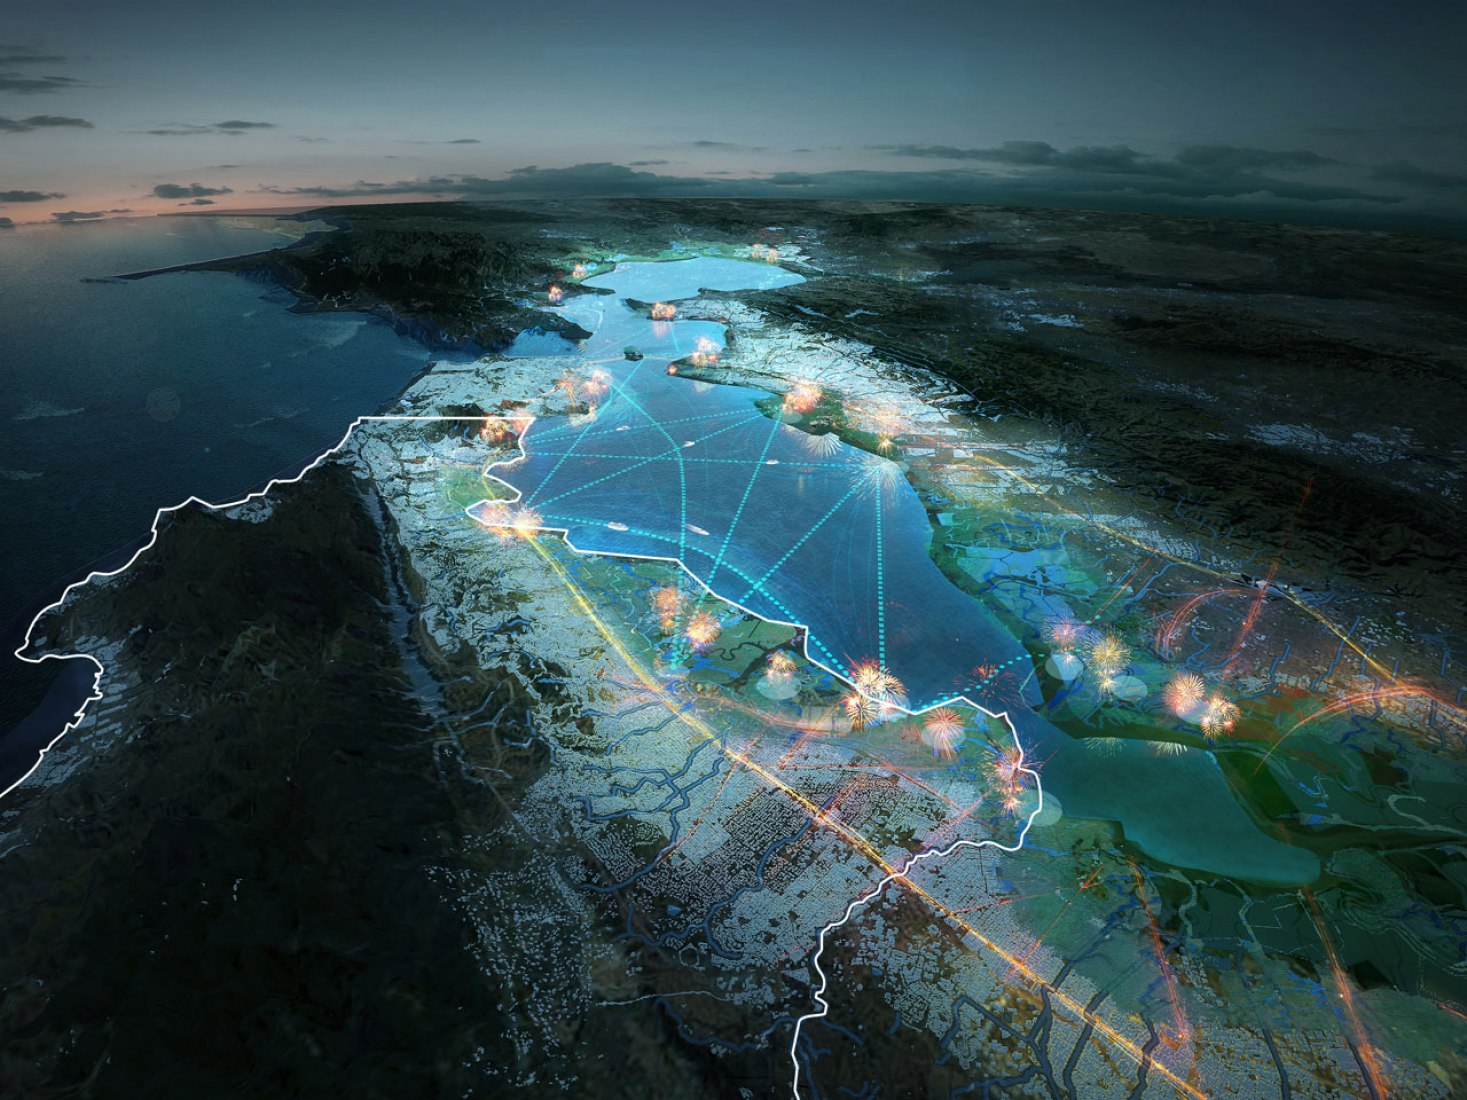 Resilient by Design by MVRDV. Images courtesy of MVRDV and HASSELL+